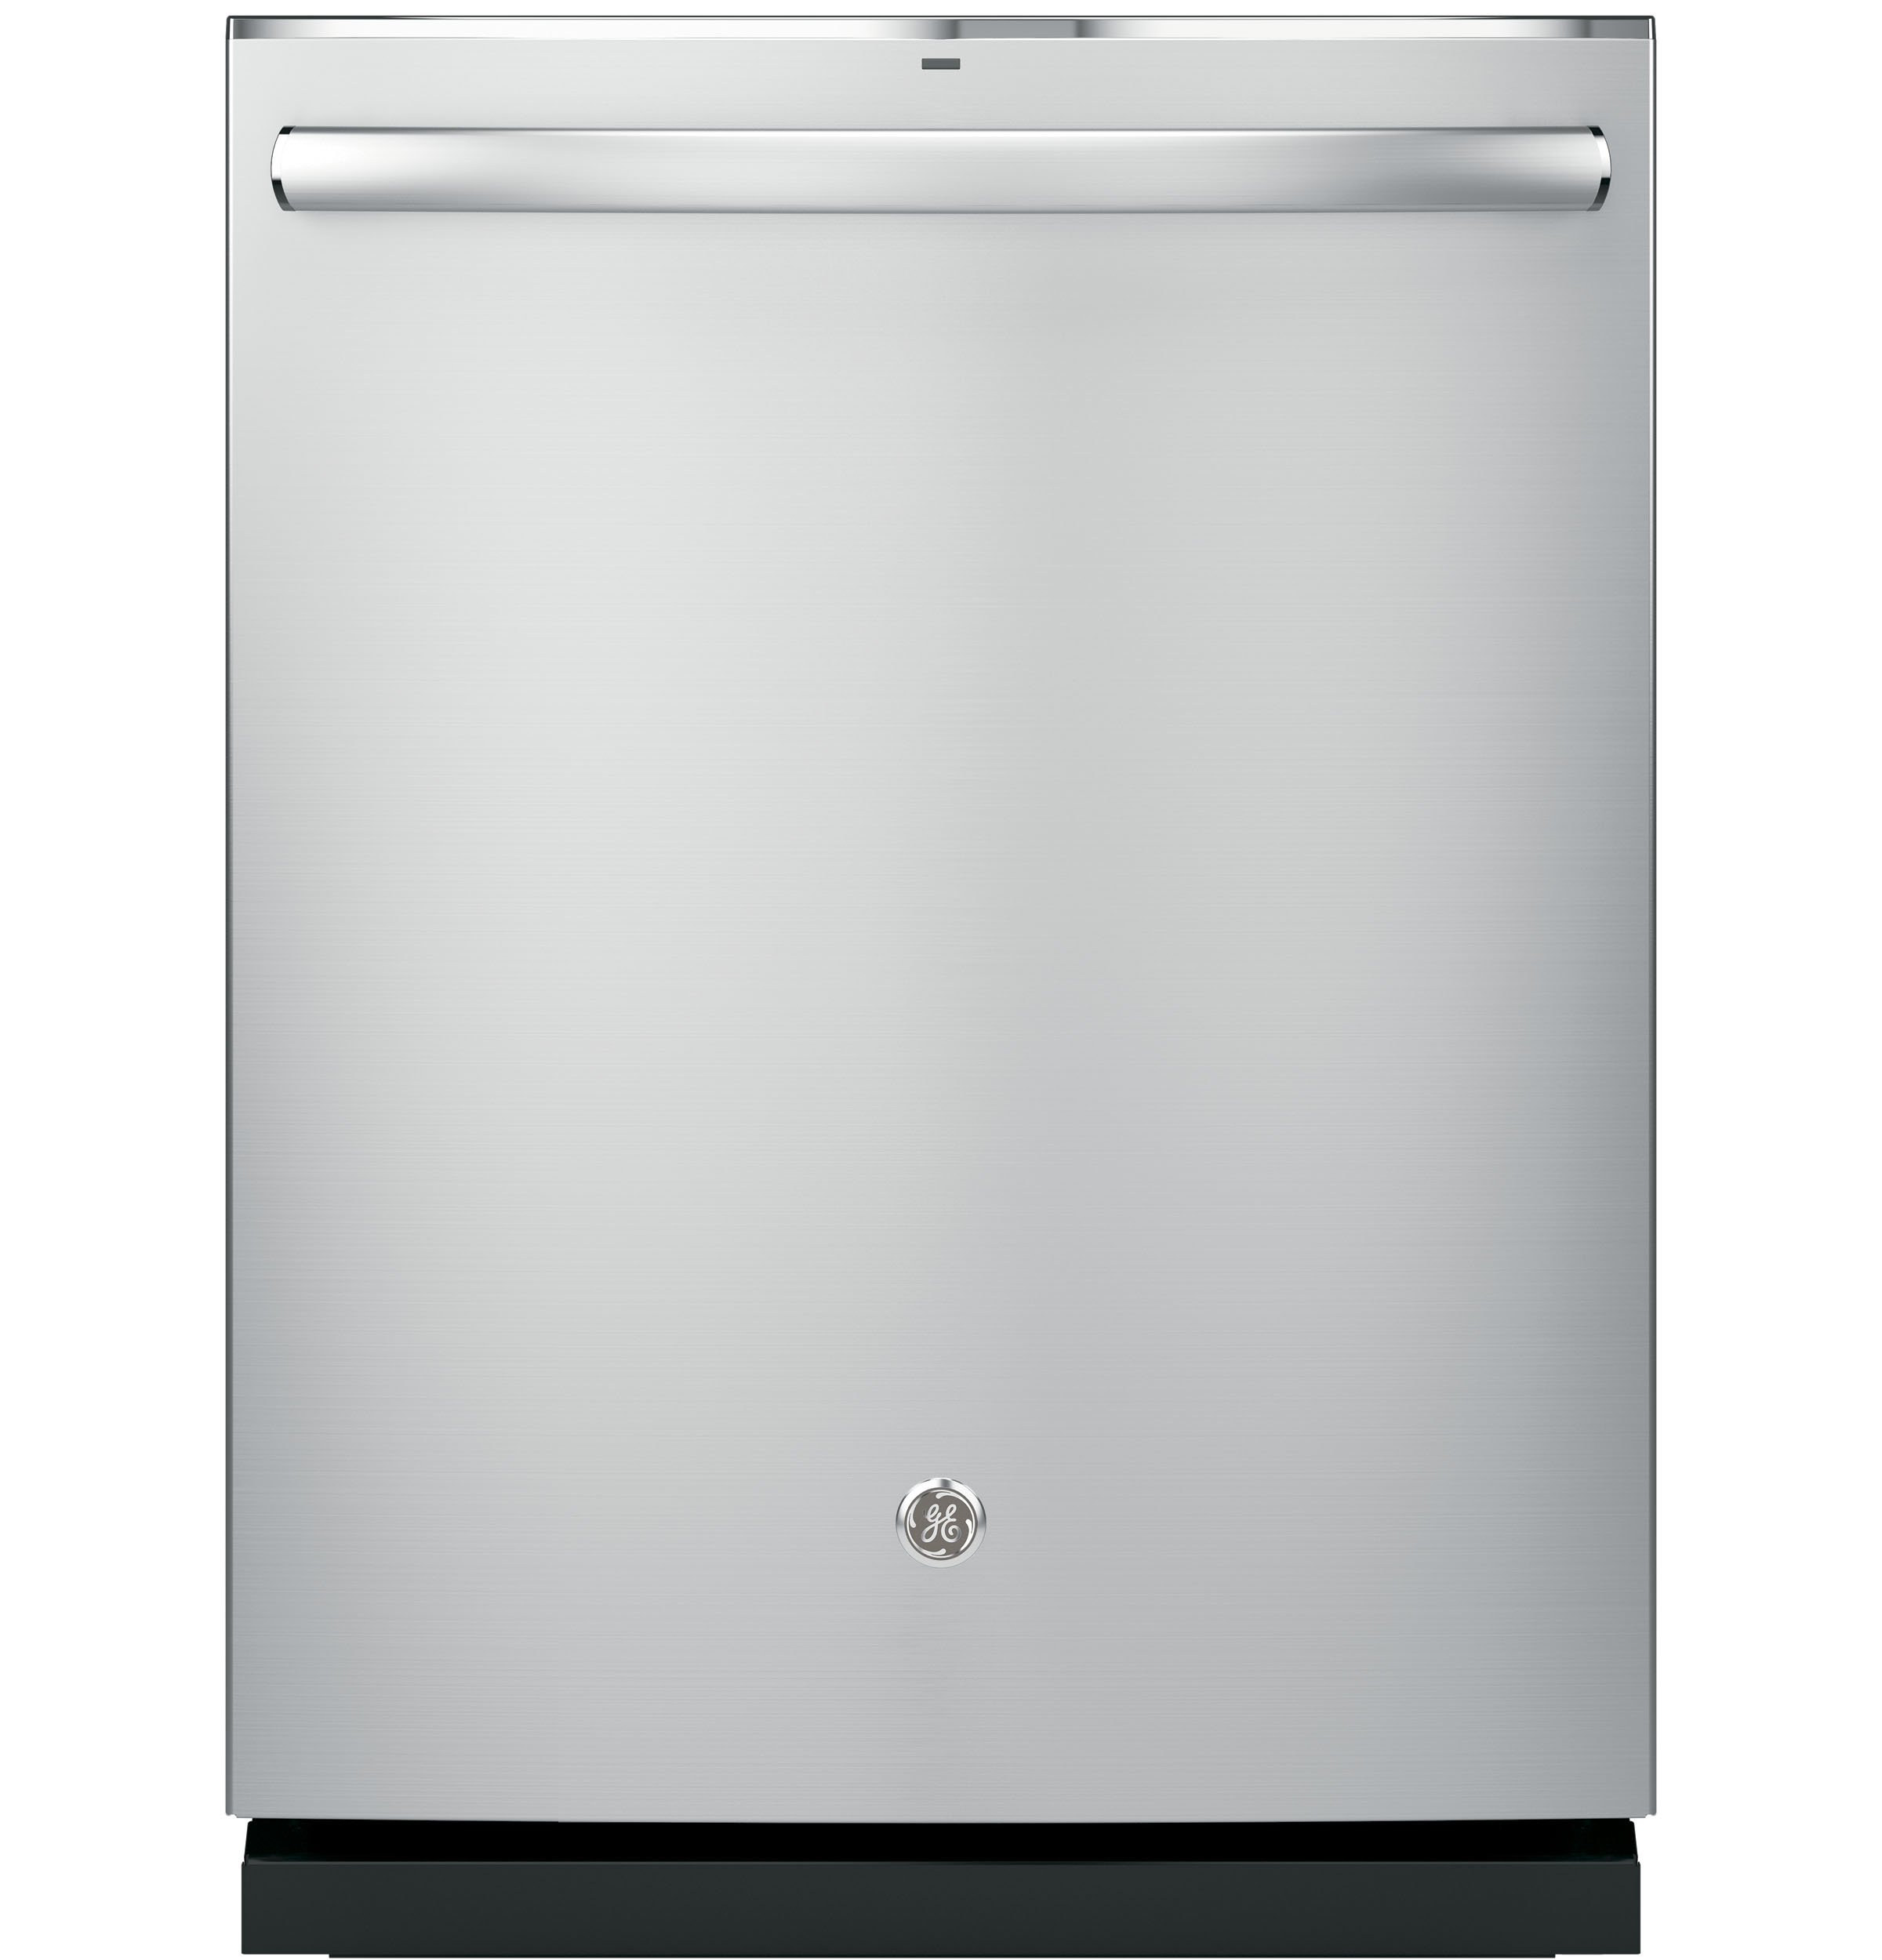 Ge Stainless Steel Interior Dishwasher With Hidden Controls Washing Machine Pump Wiring Product Image